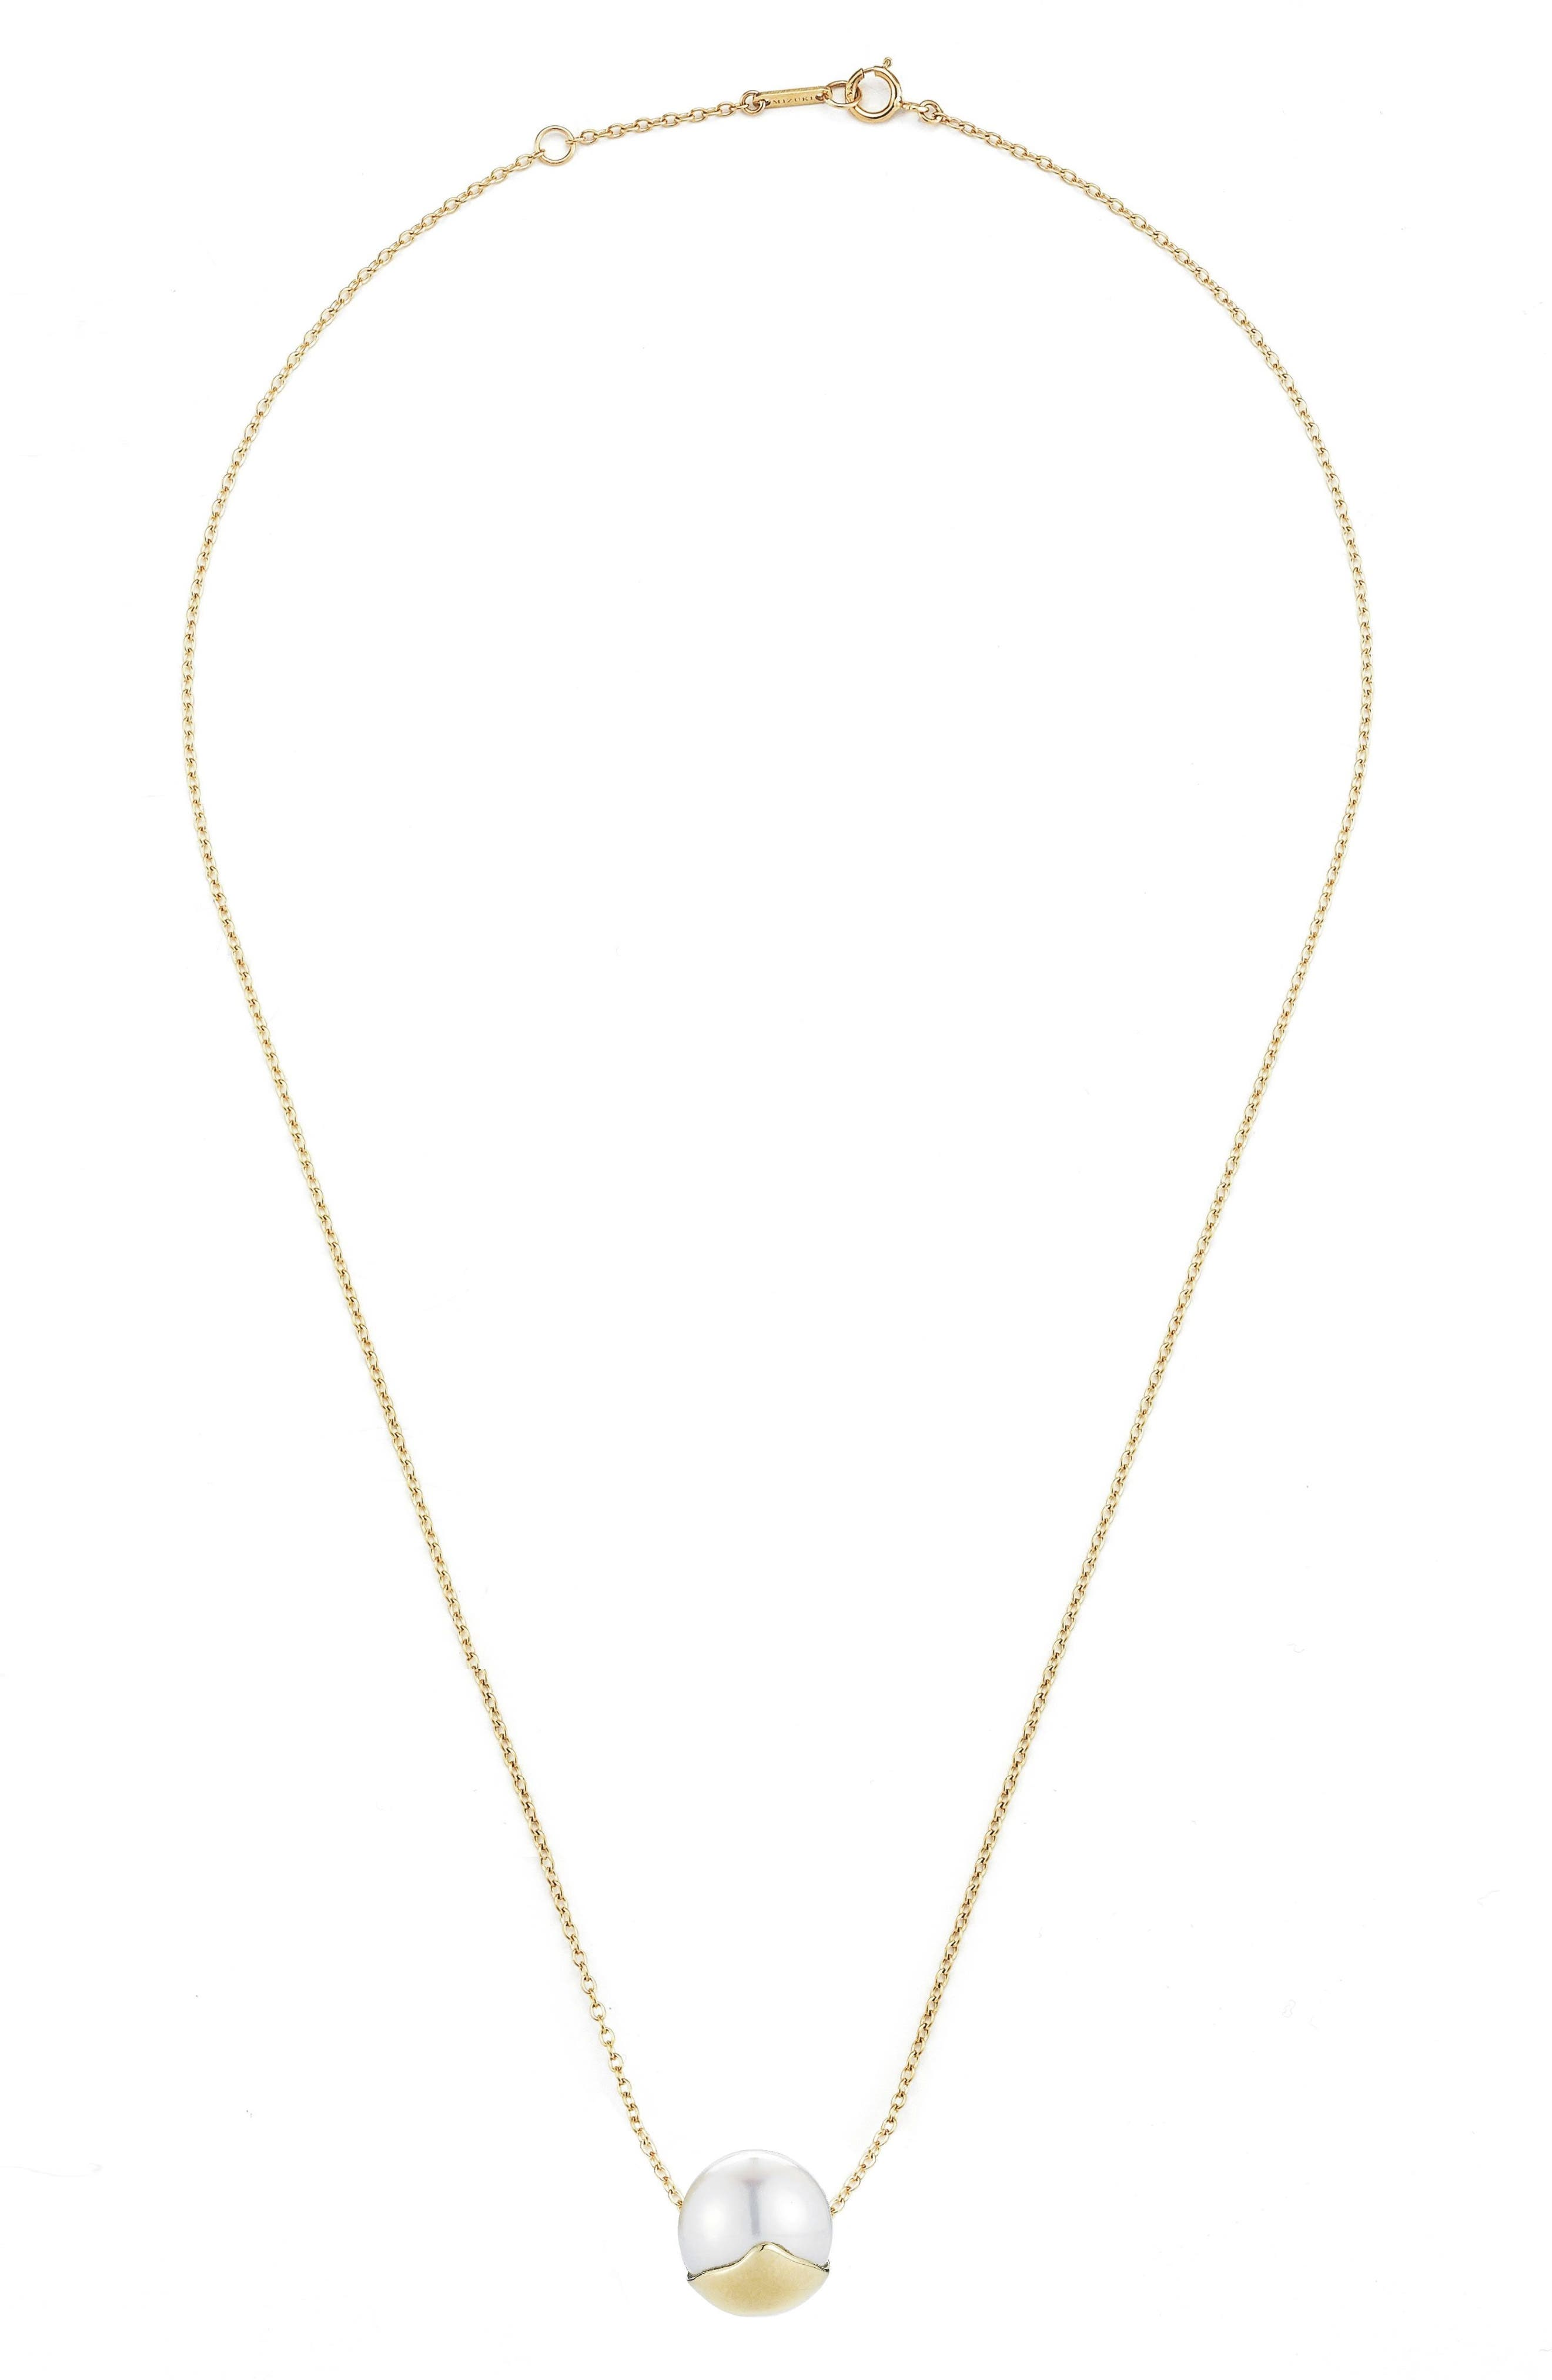 Sea of Beauty Pearl Pendant Necklace,                         Main,                         color, Yellow Gold/ White Pearl